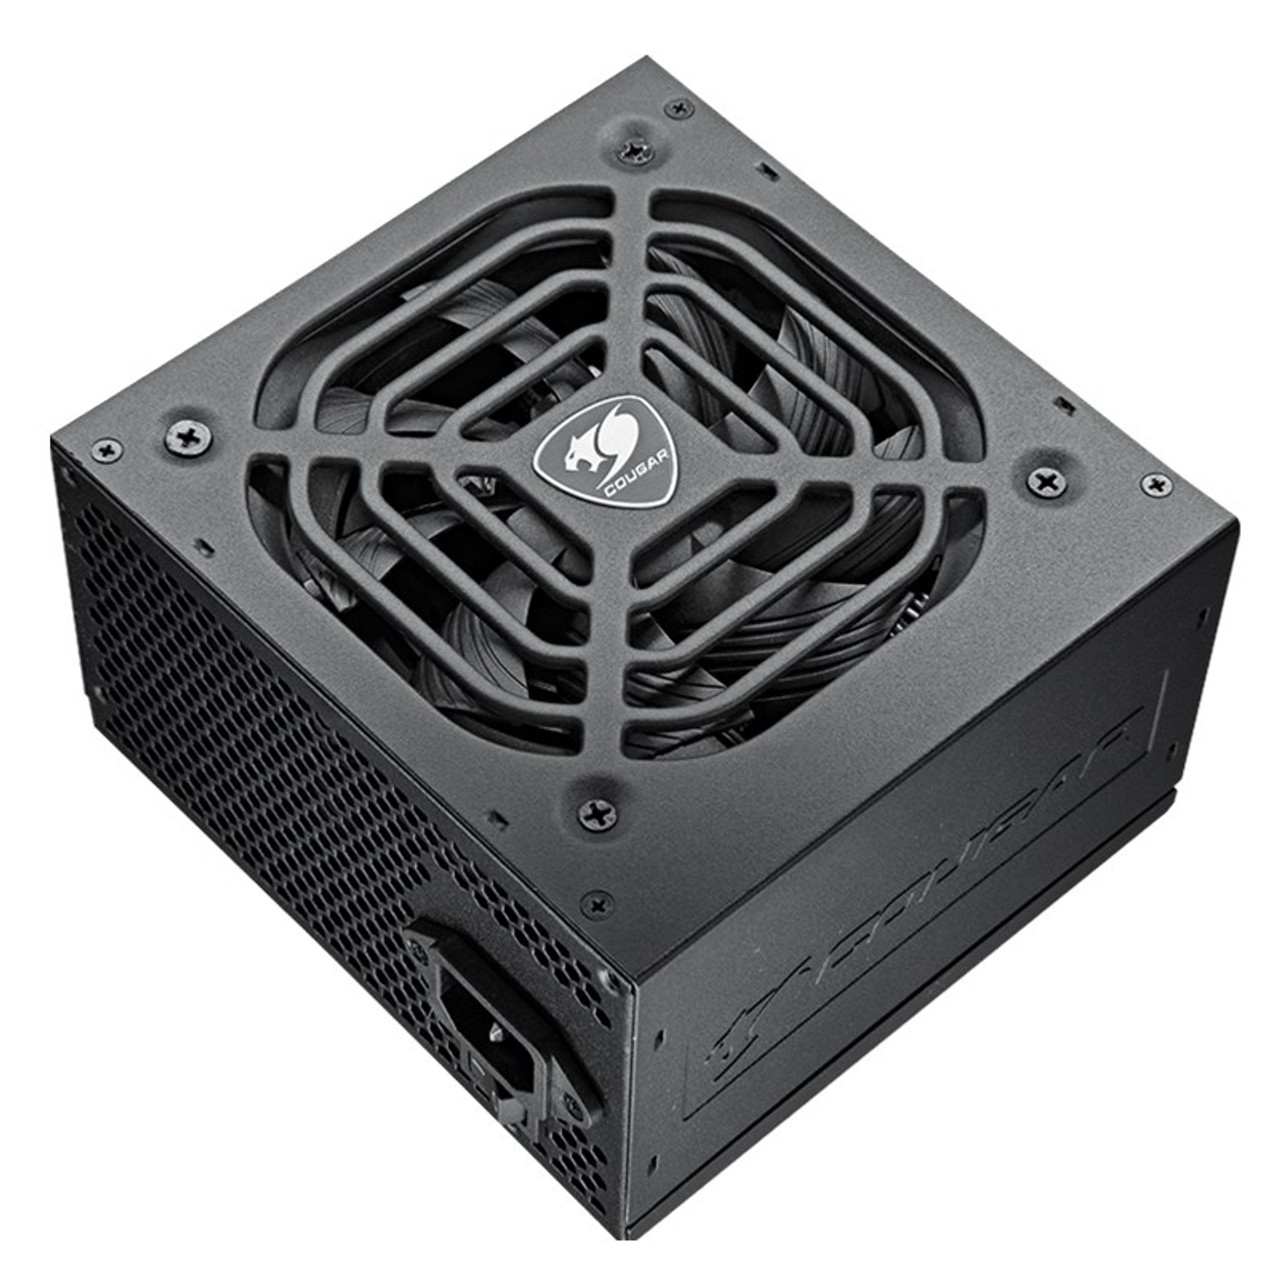 Image for Cougar XTC500 500W 80+ White Power Supply CX Computer Superstore